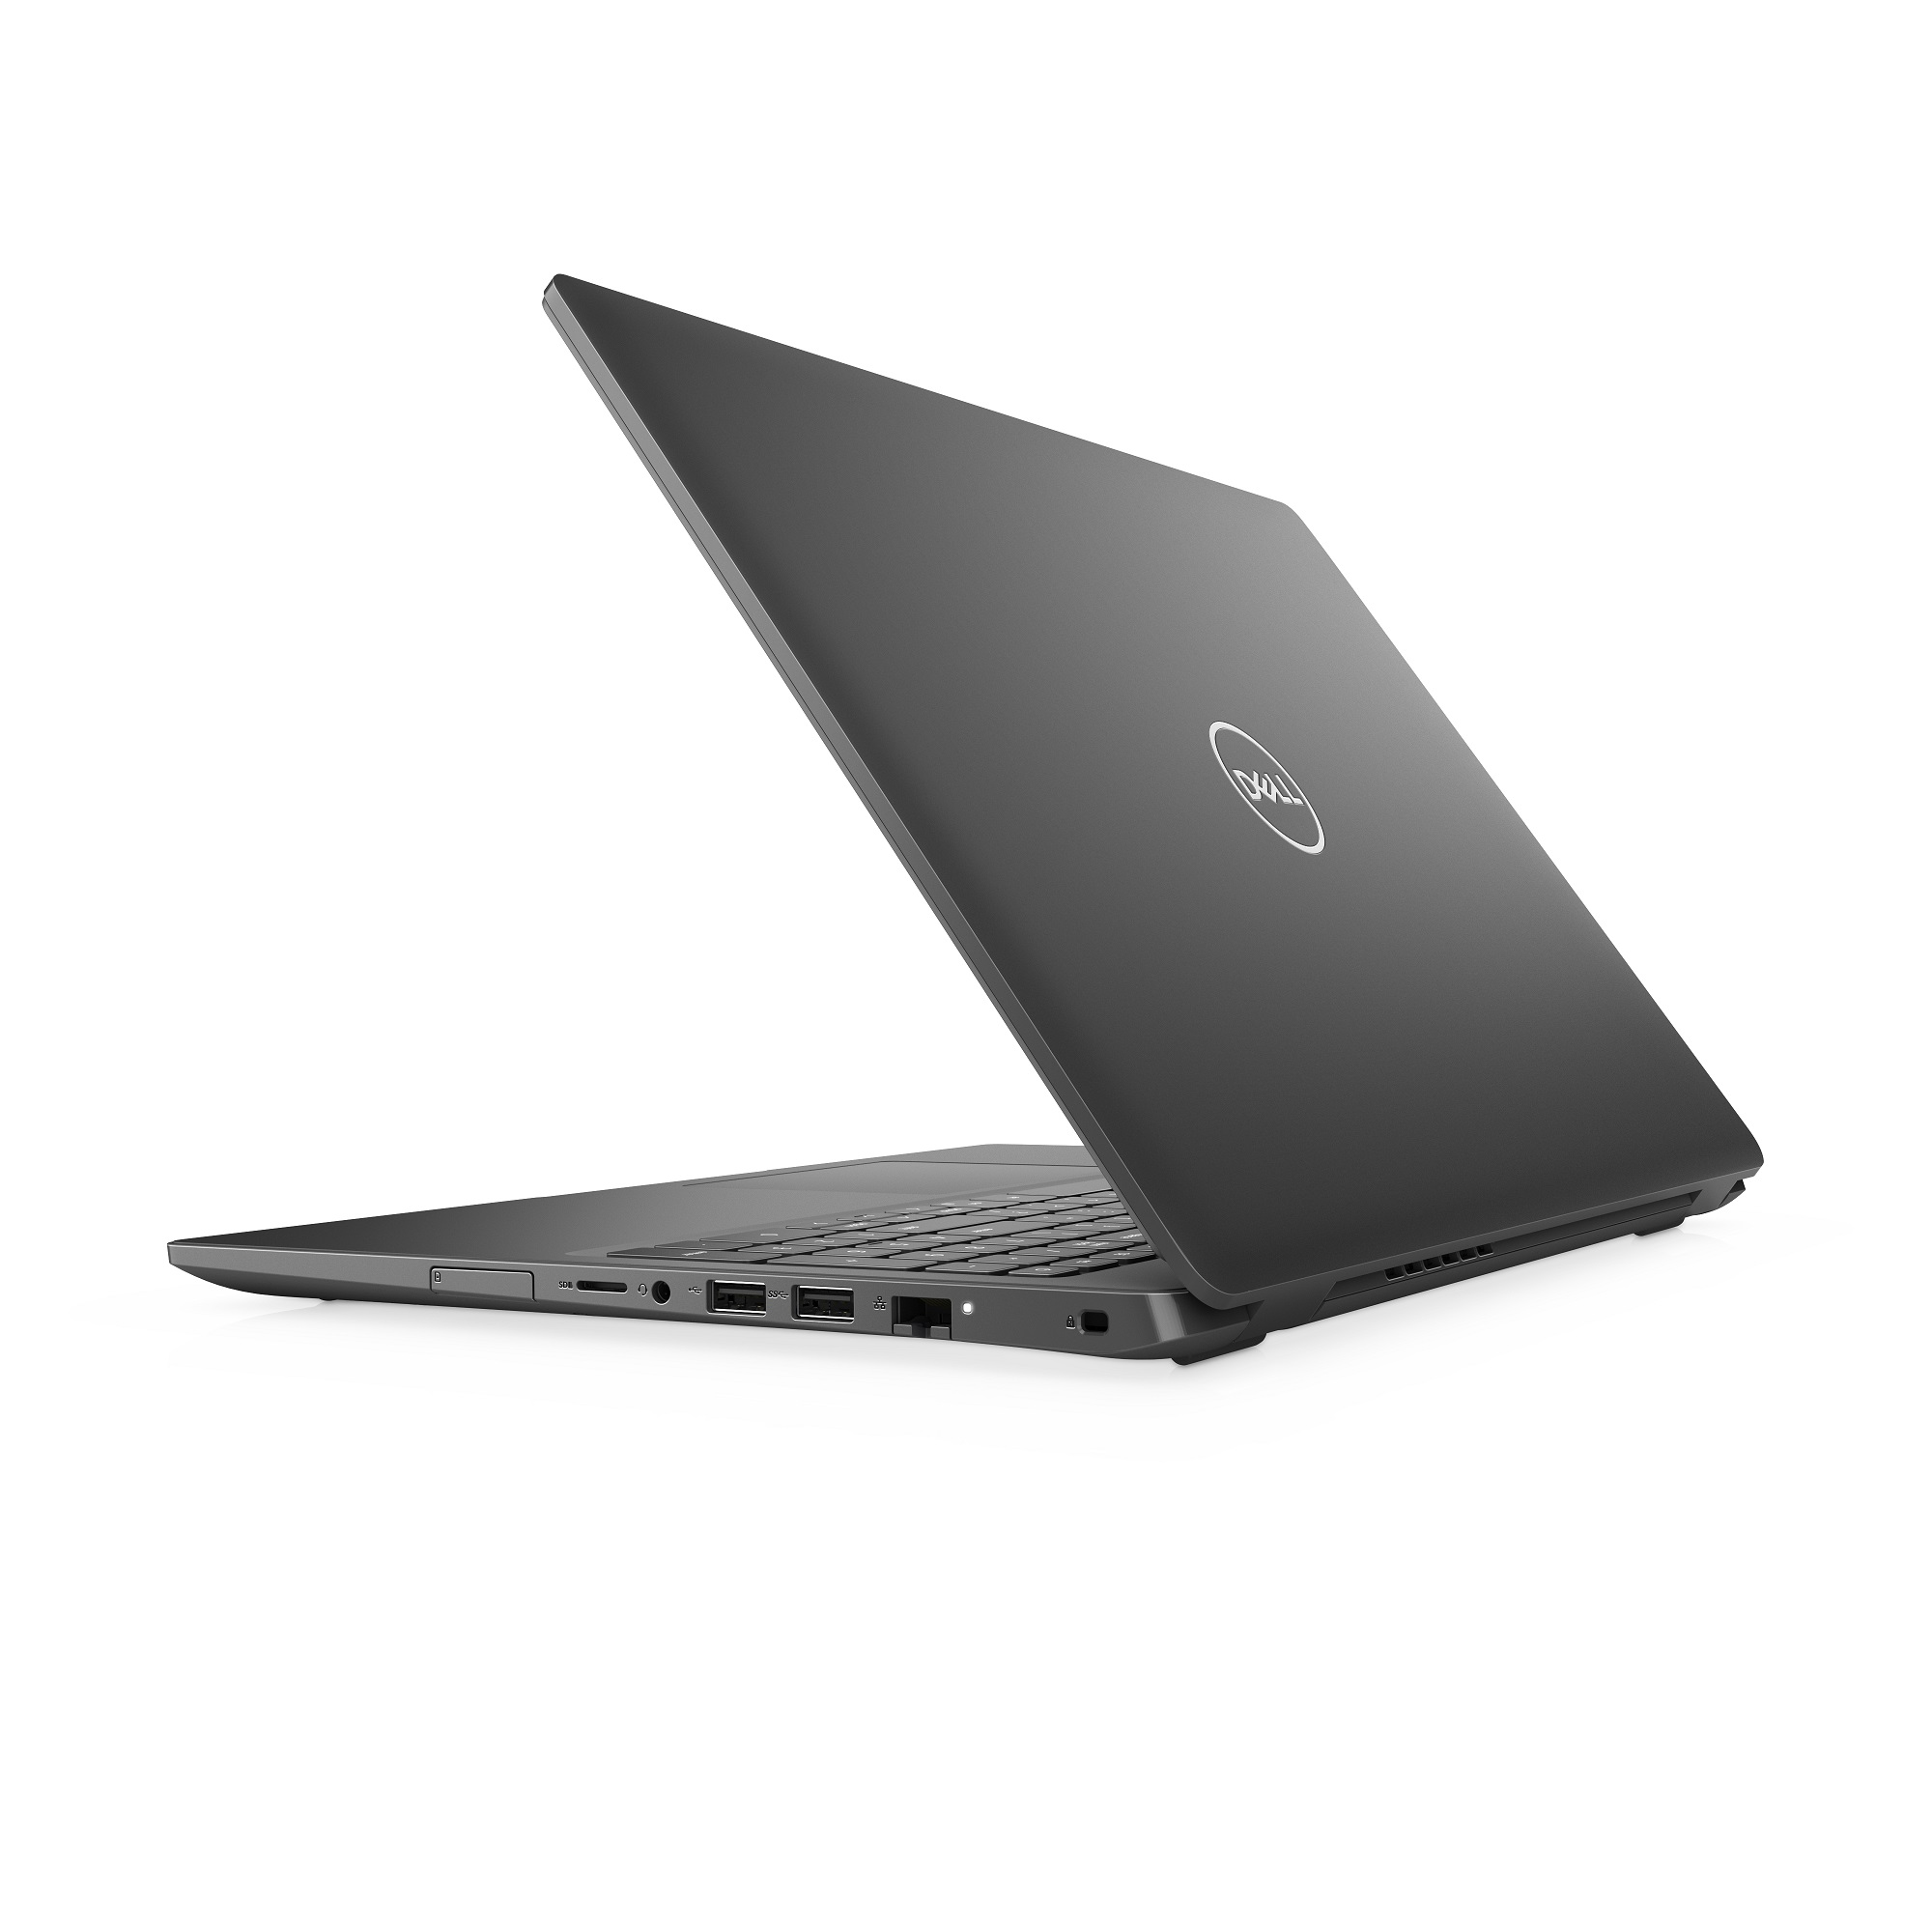 Laptop DELL Latitude 3510 15.6 FHD AG i5-10310U 8GB 512GB BK FPR Win10Pro 3YBWOS